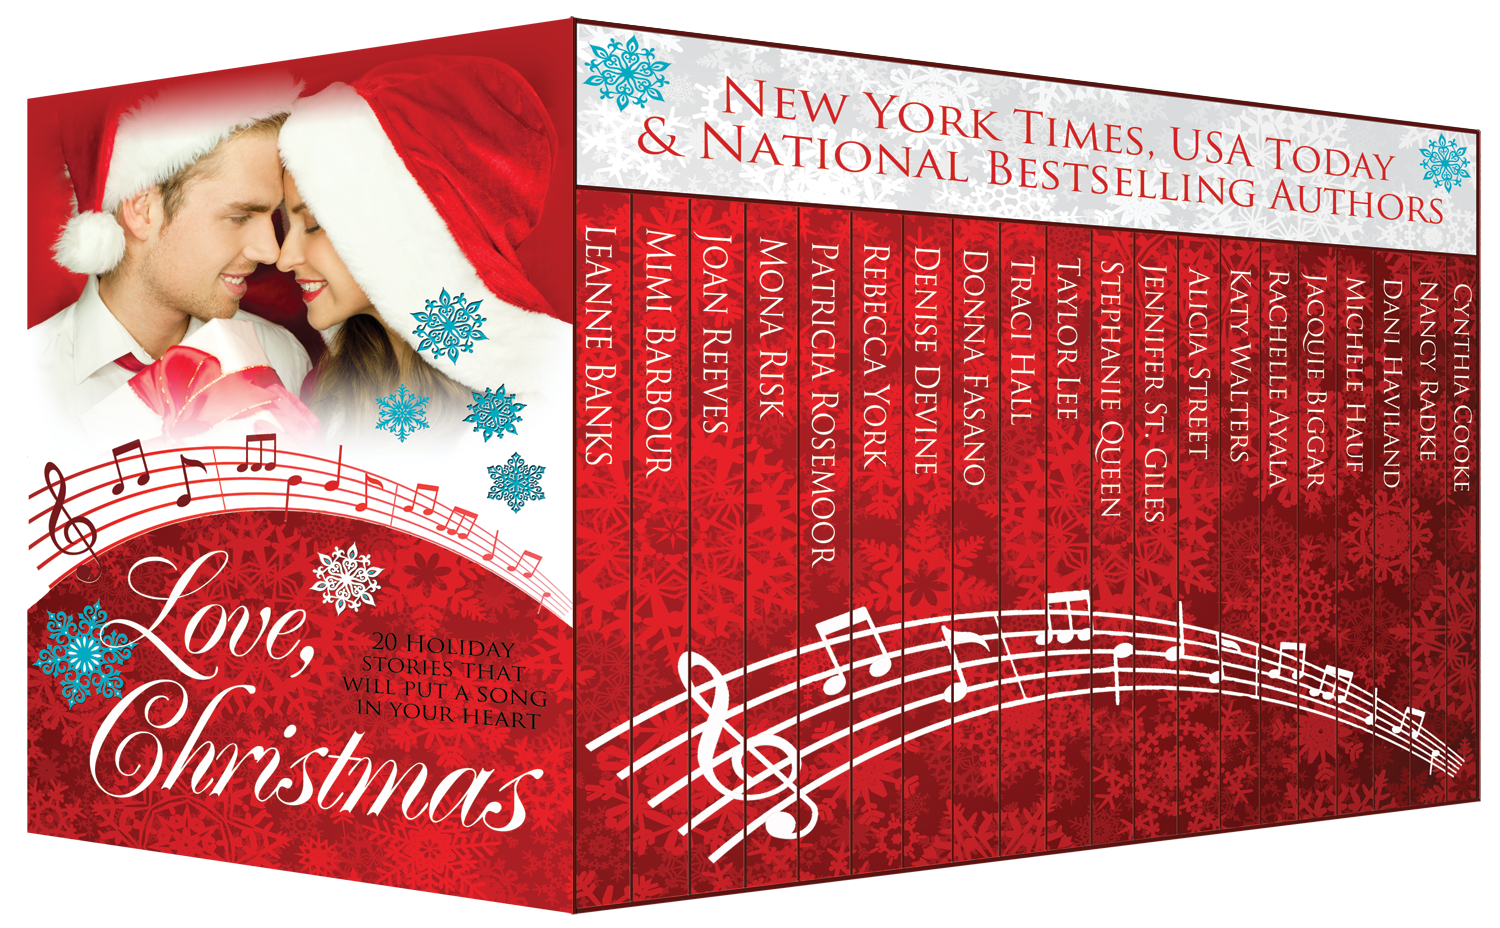 Love, Christmas by Mimi Barbour & 19 other authors from Authors' Billboard